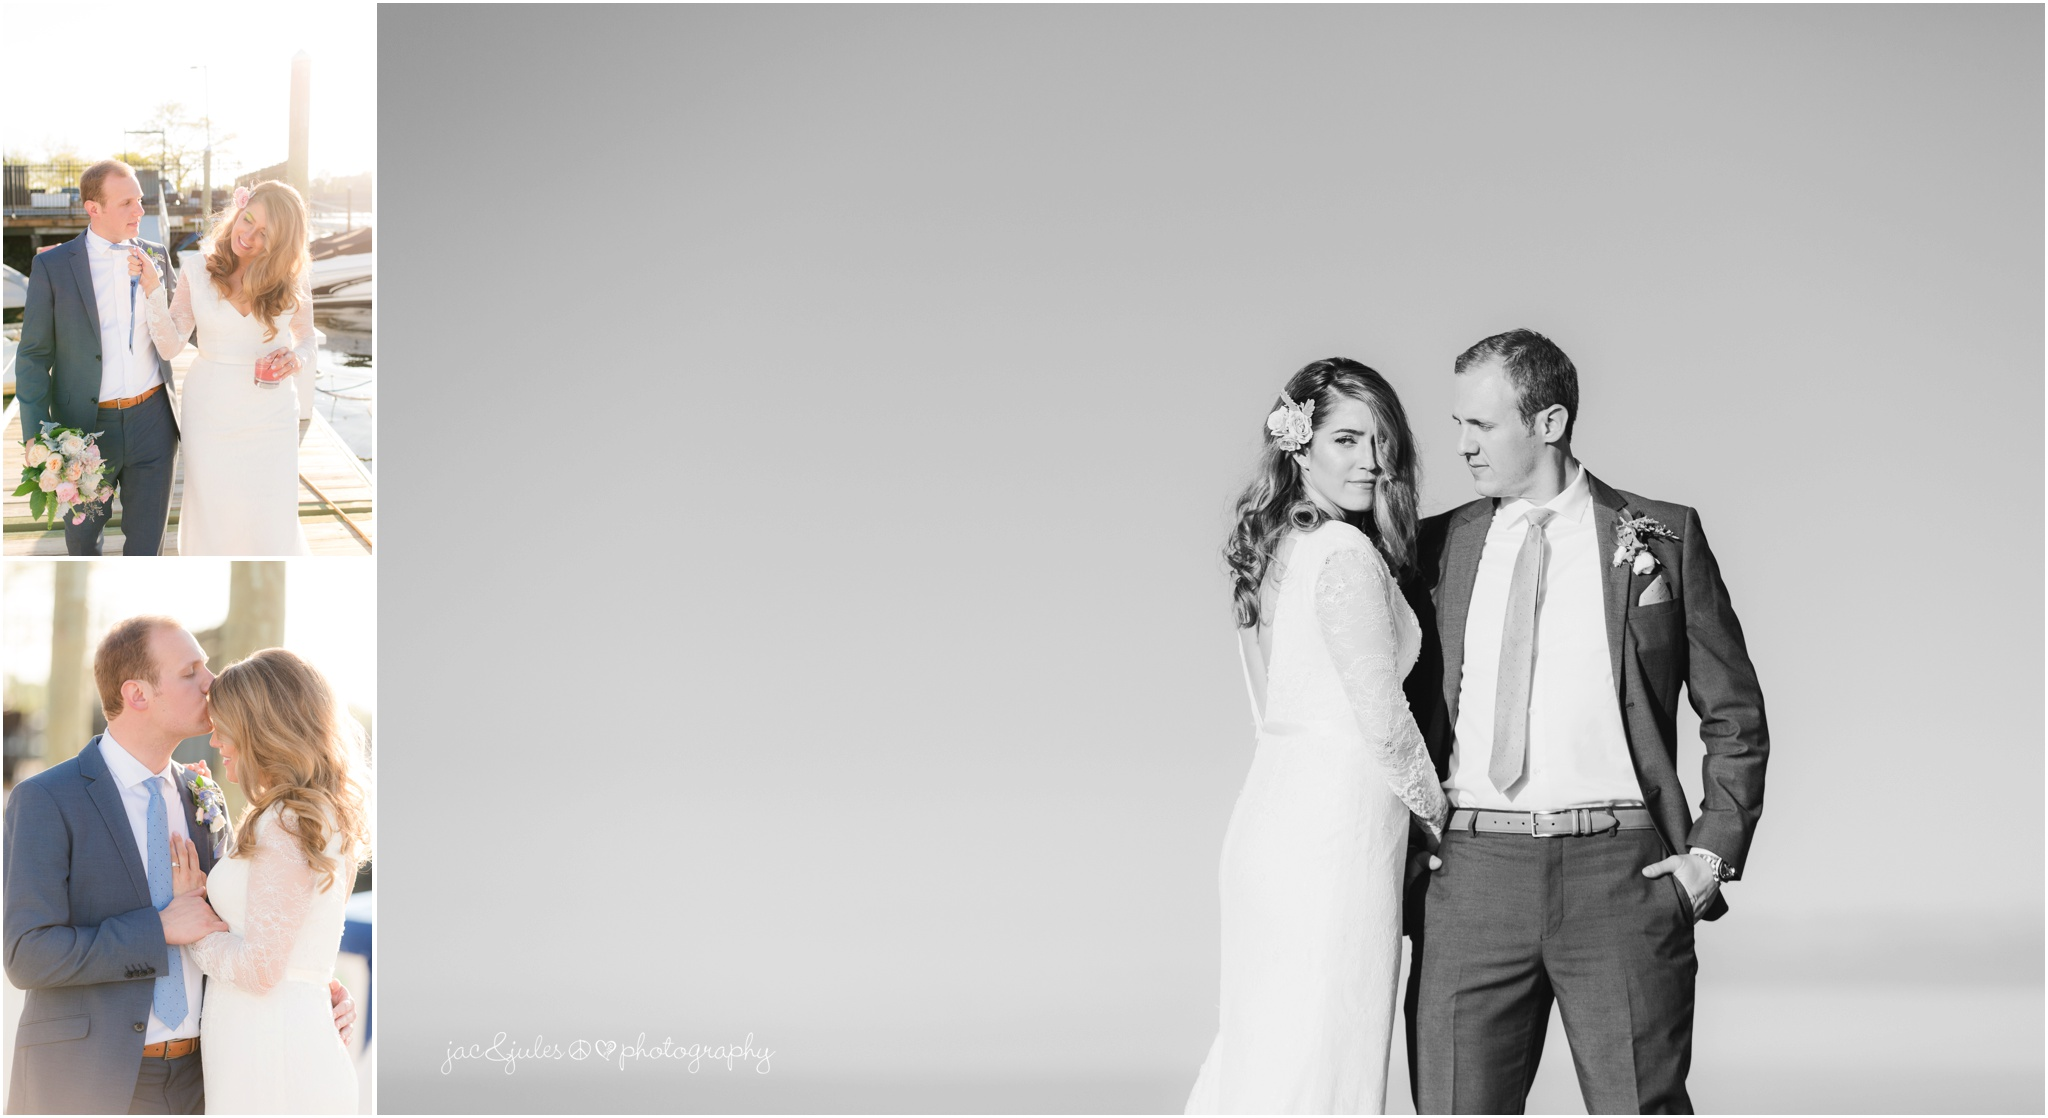 cool photos of bride and groom on dock